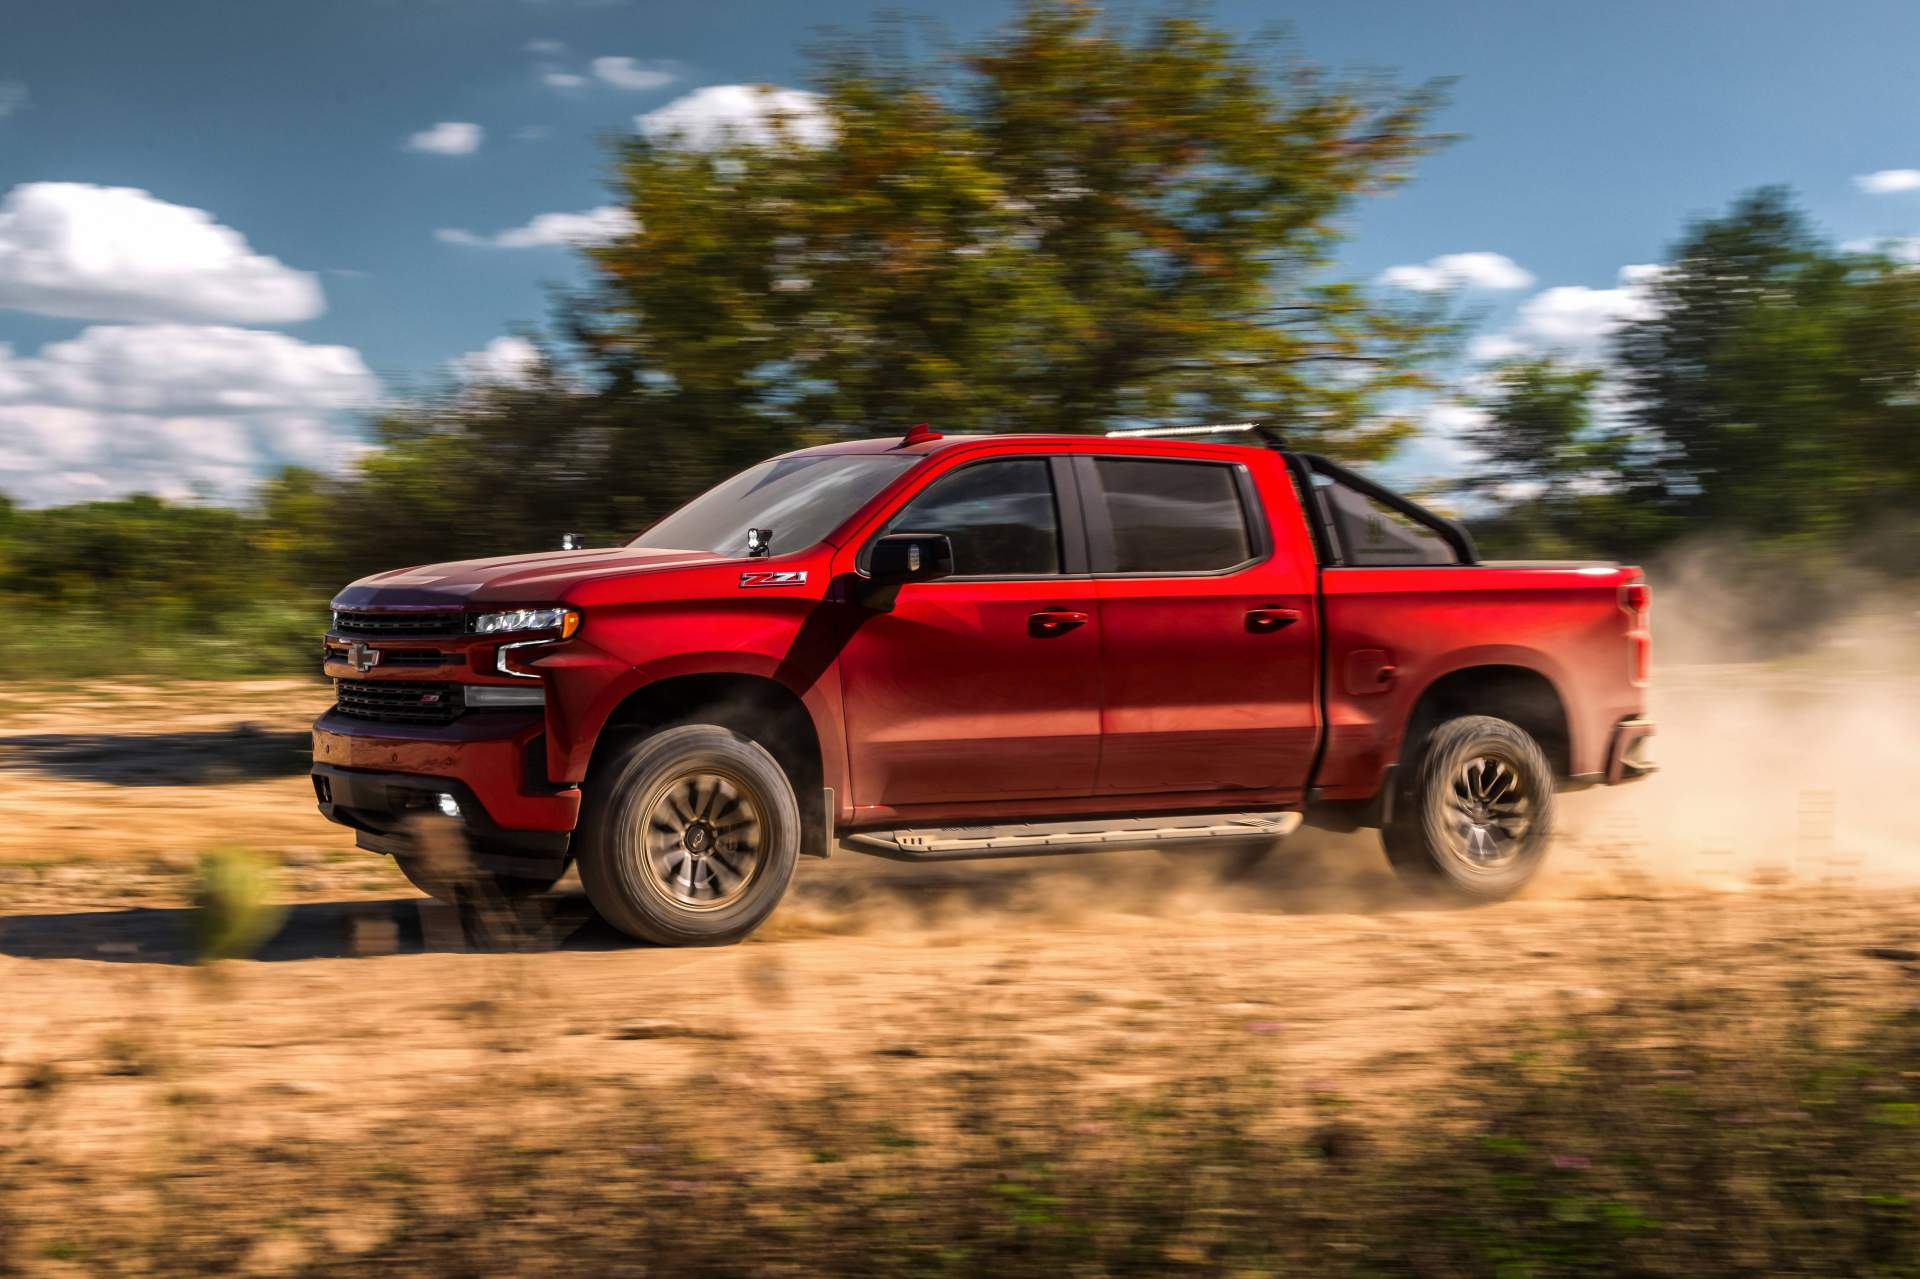 General Motors Not Interested In Autonomous, Electric Pickup